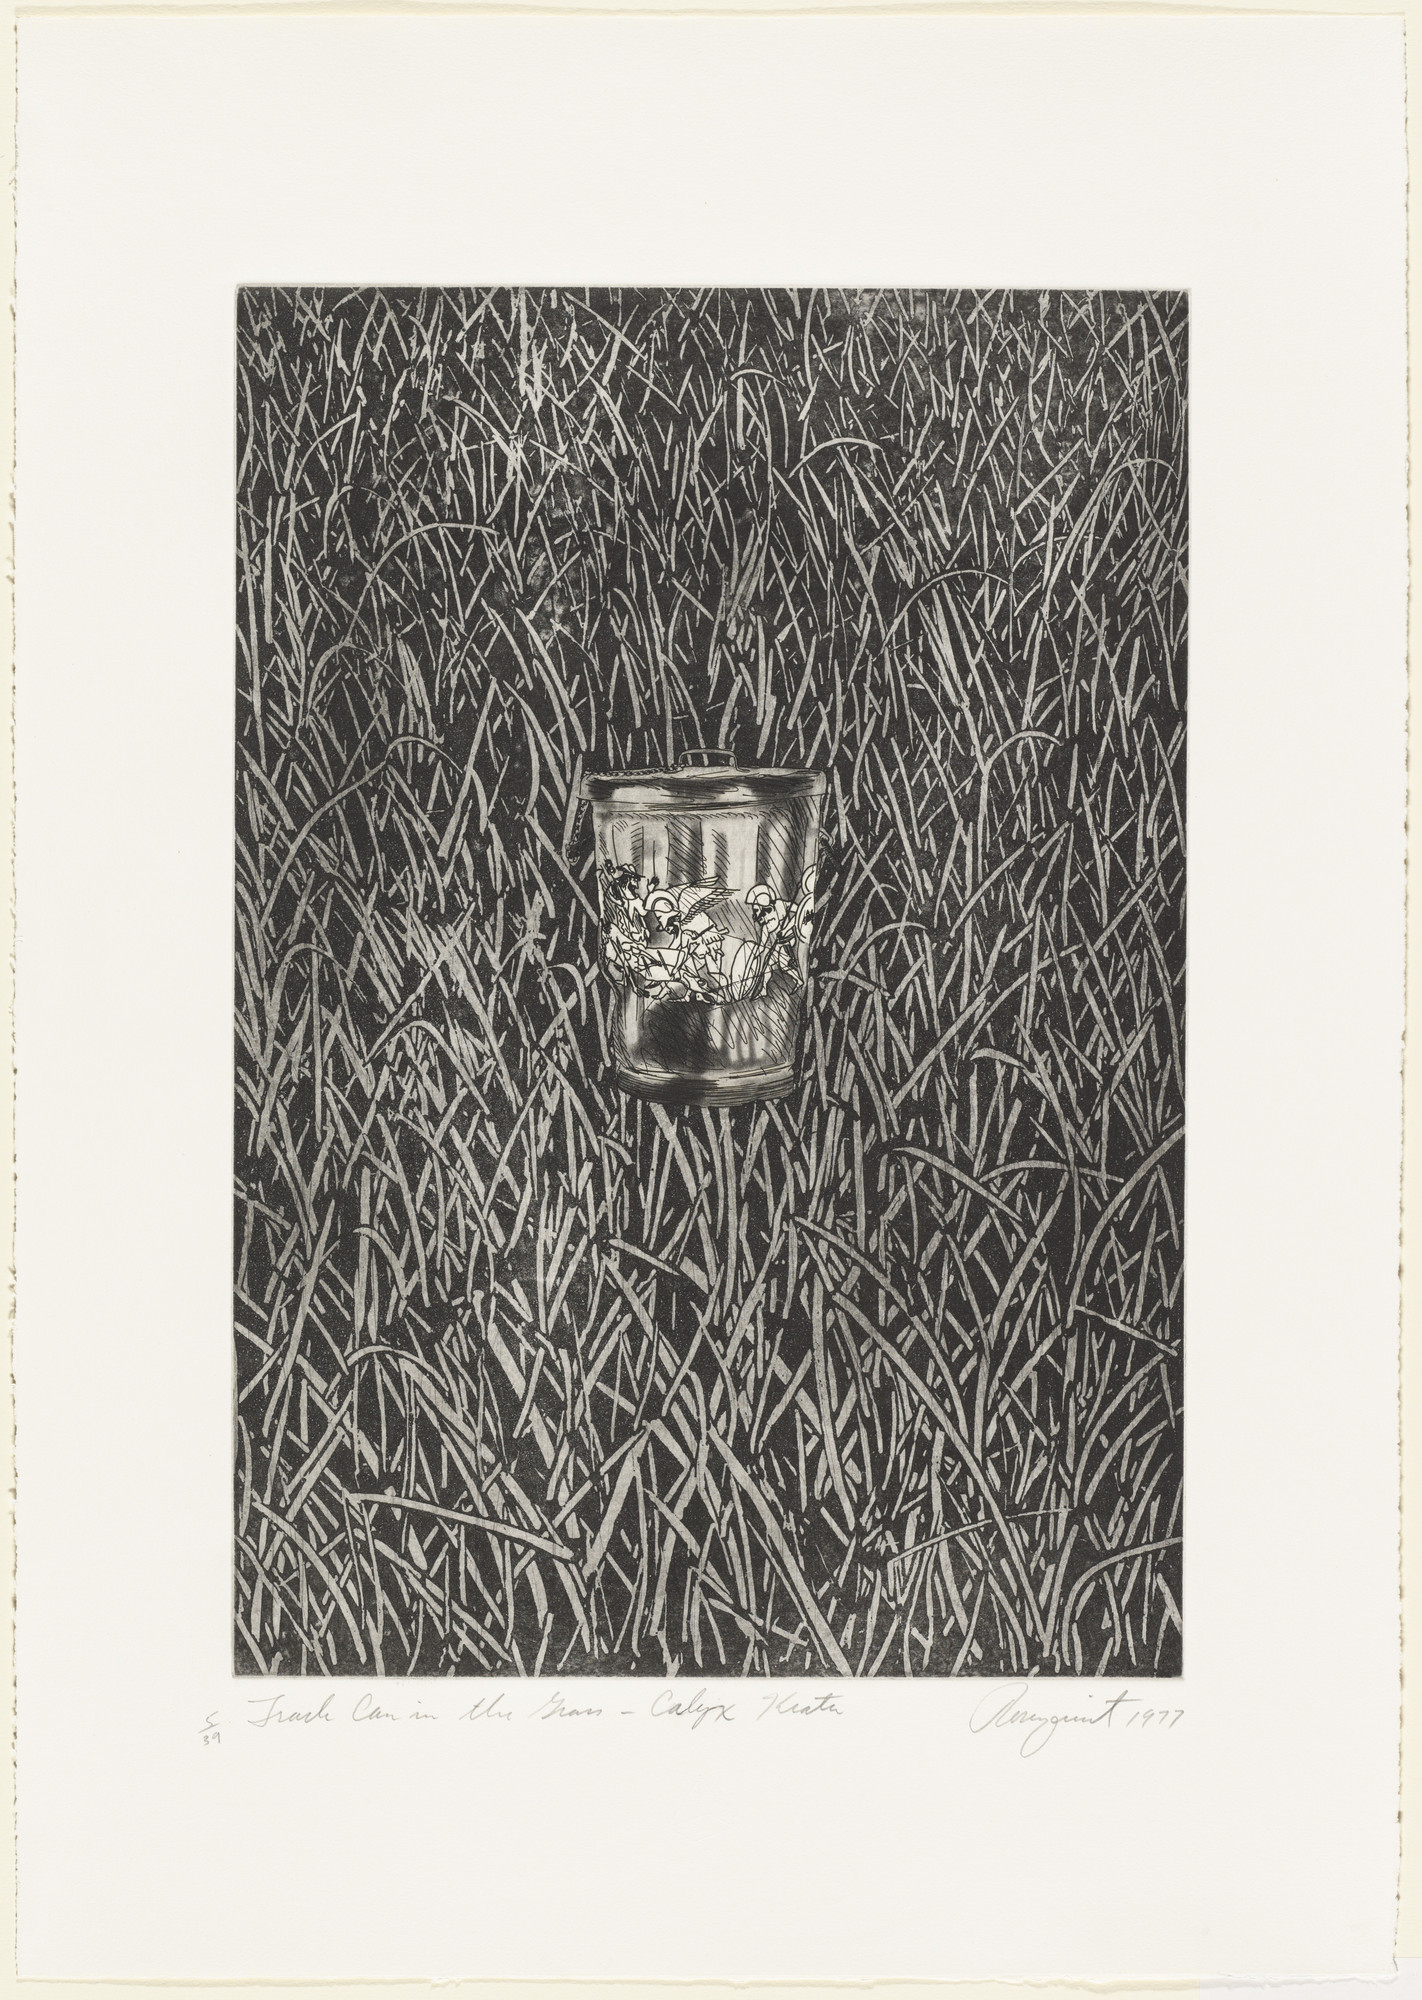 James Rosenquist. Trash Can in the Grass Calyx-Krater. 1977